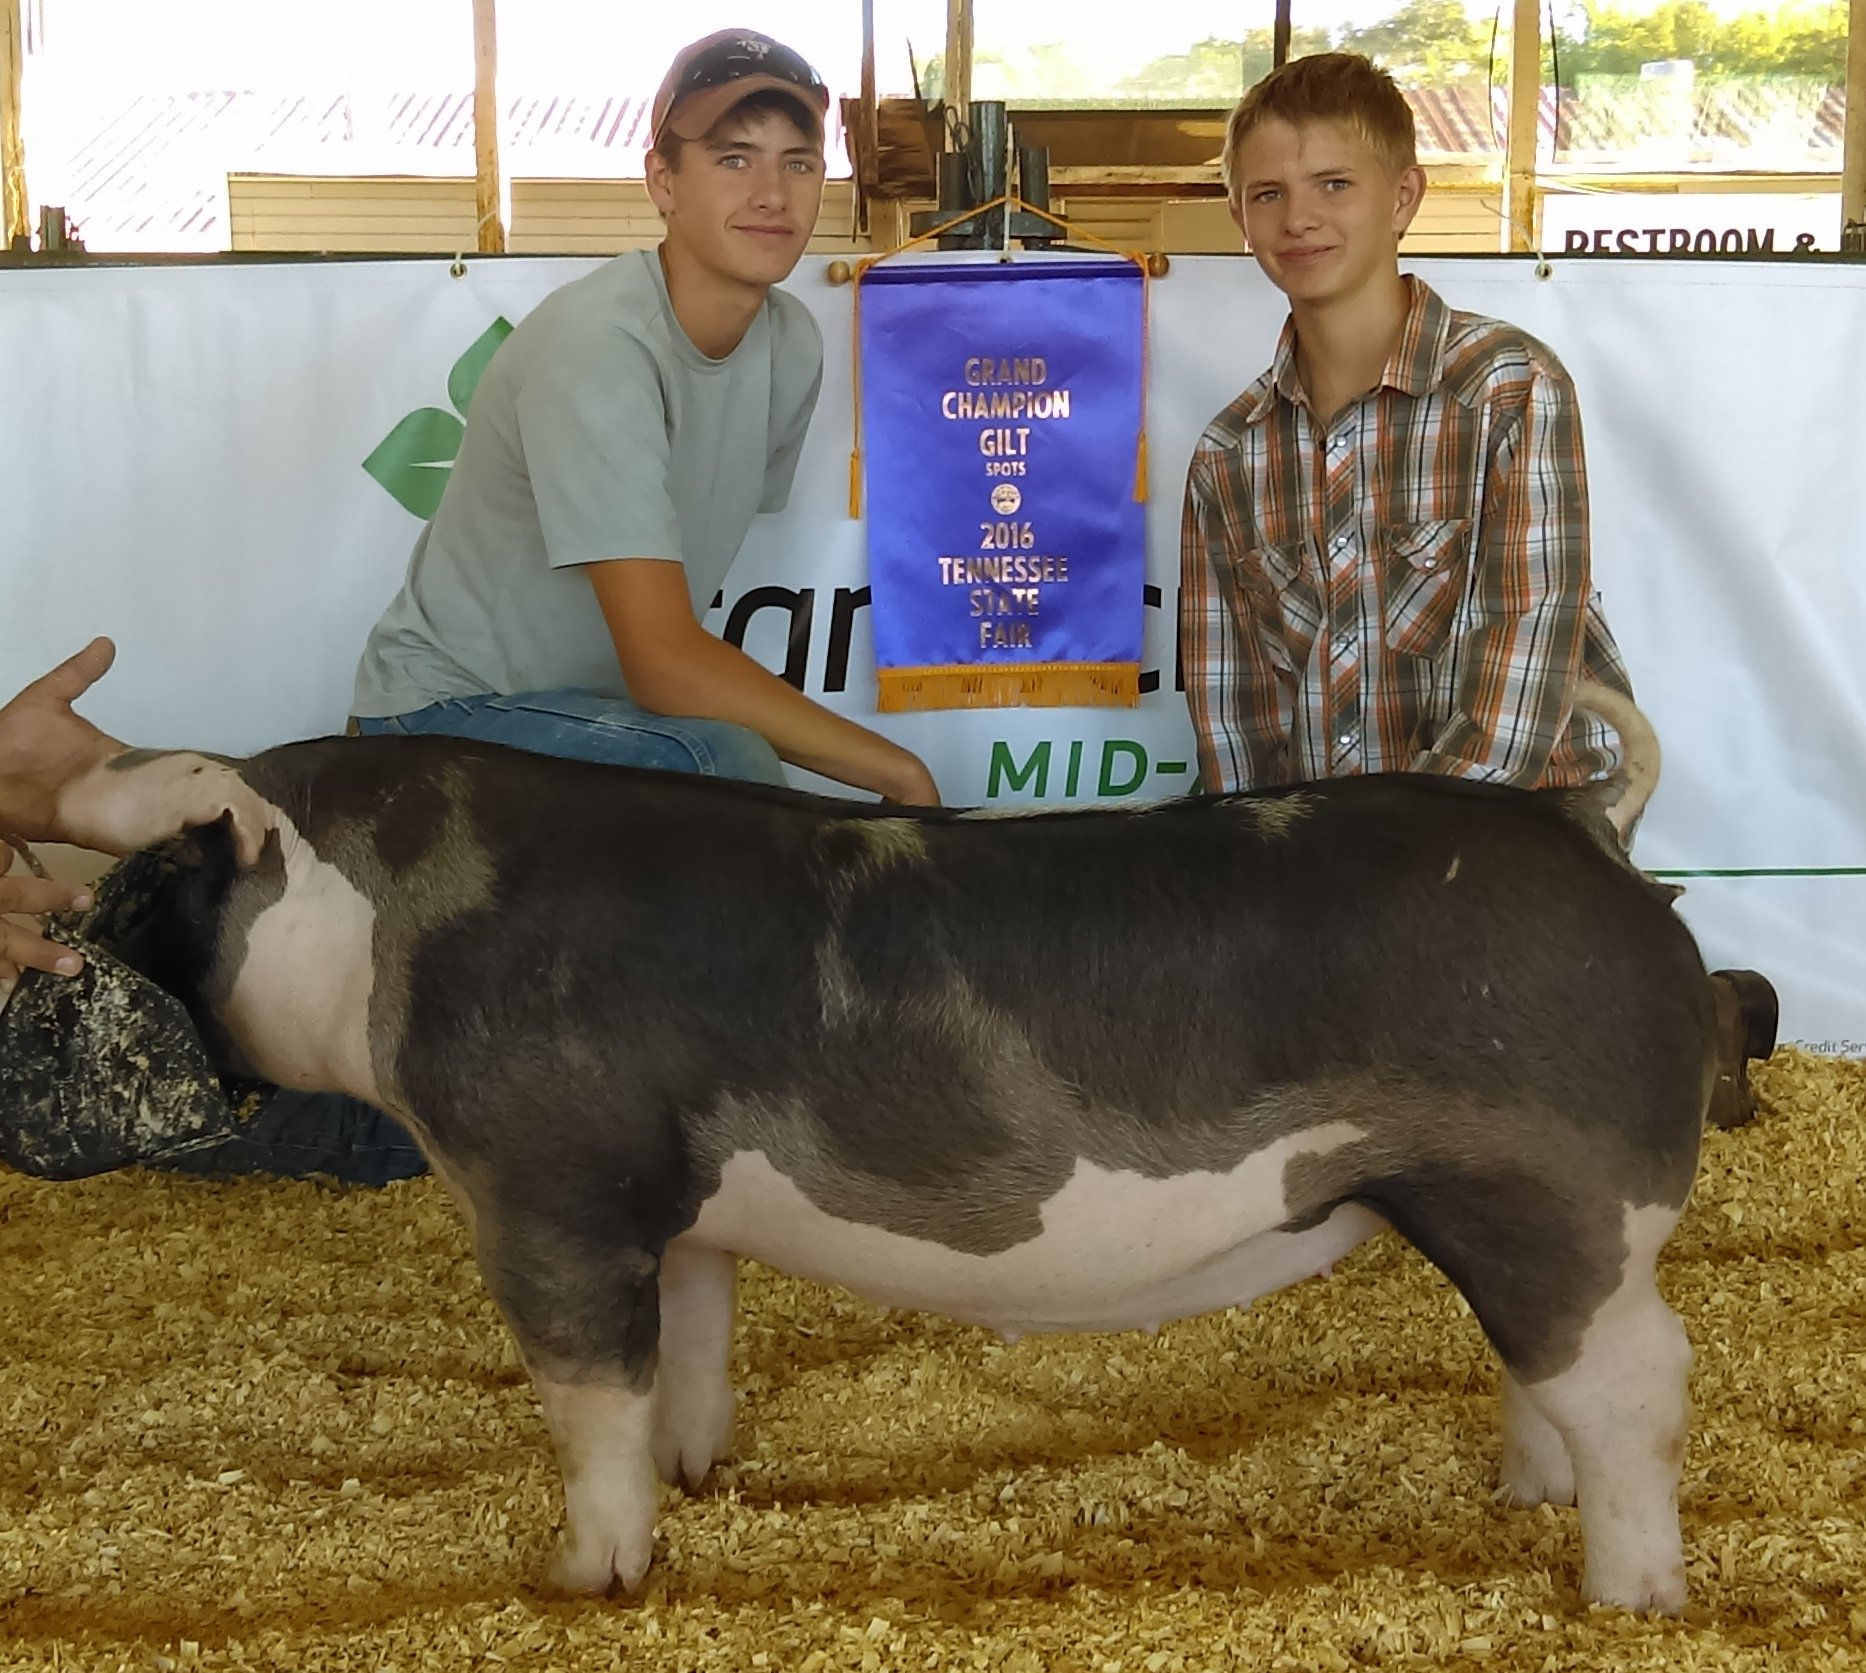 Will and Gill Derryberry 2016 Tennessee State Fair Champion Spot Gilt